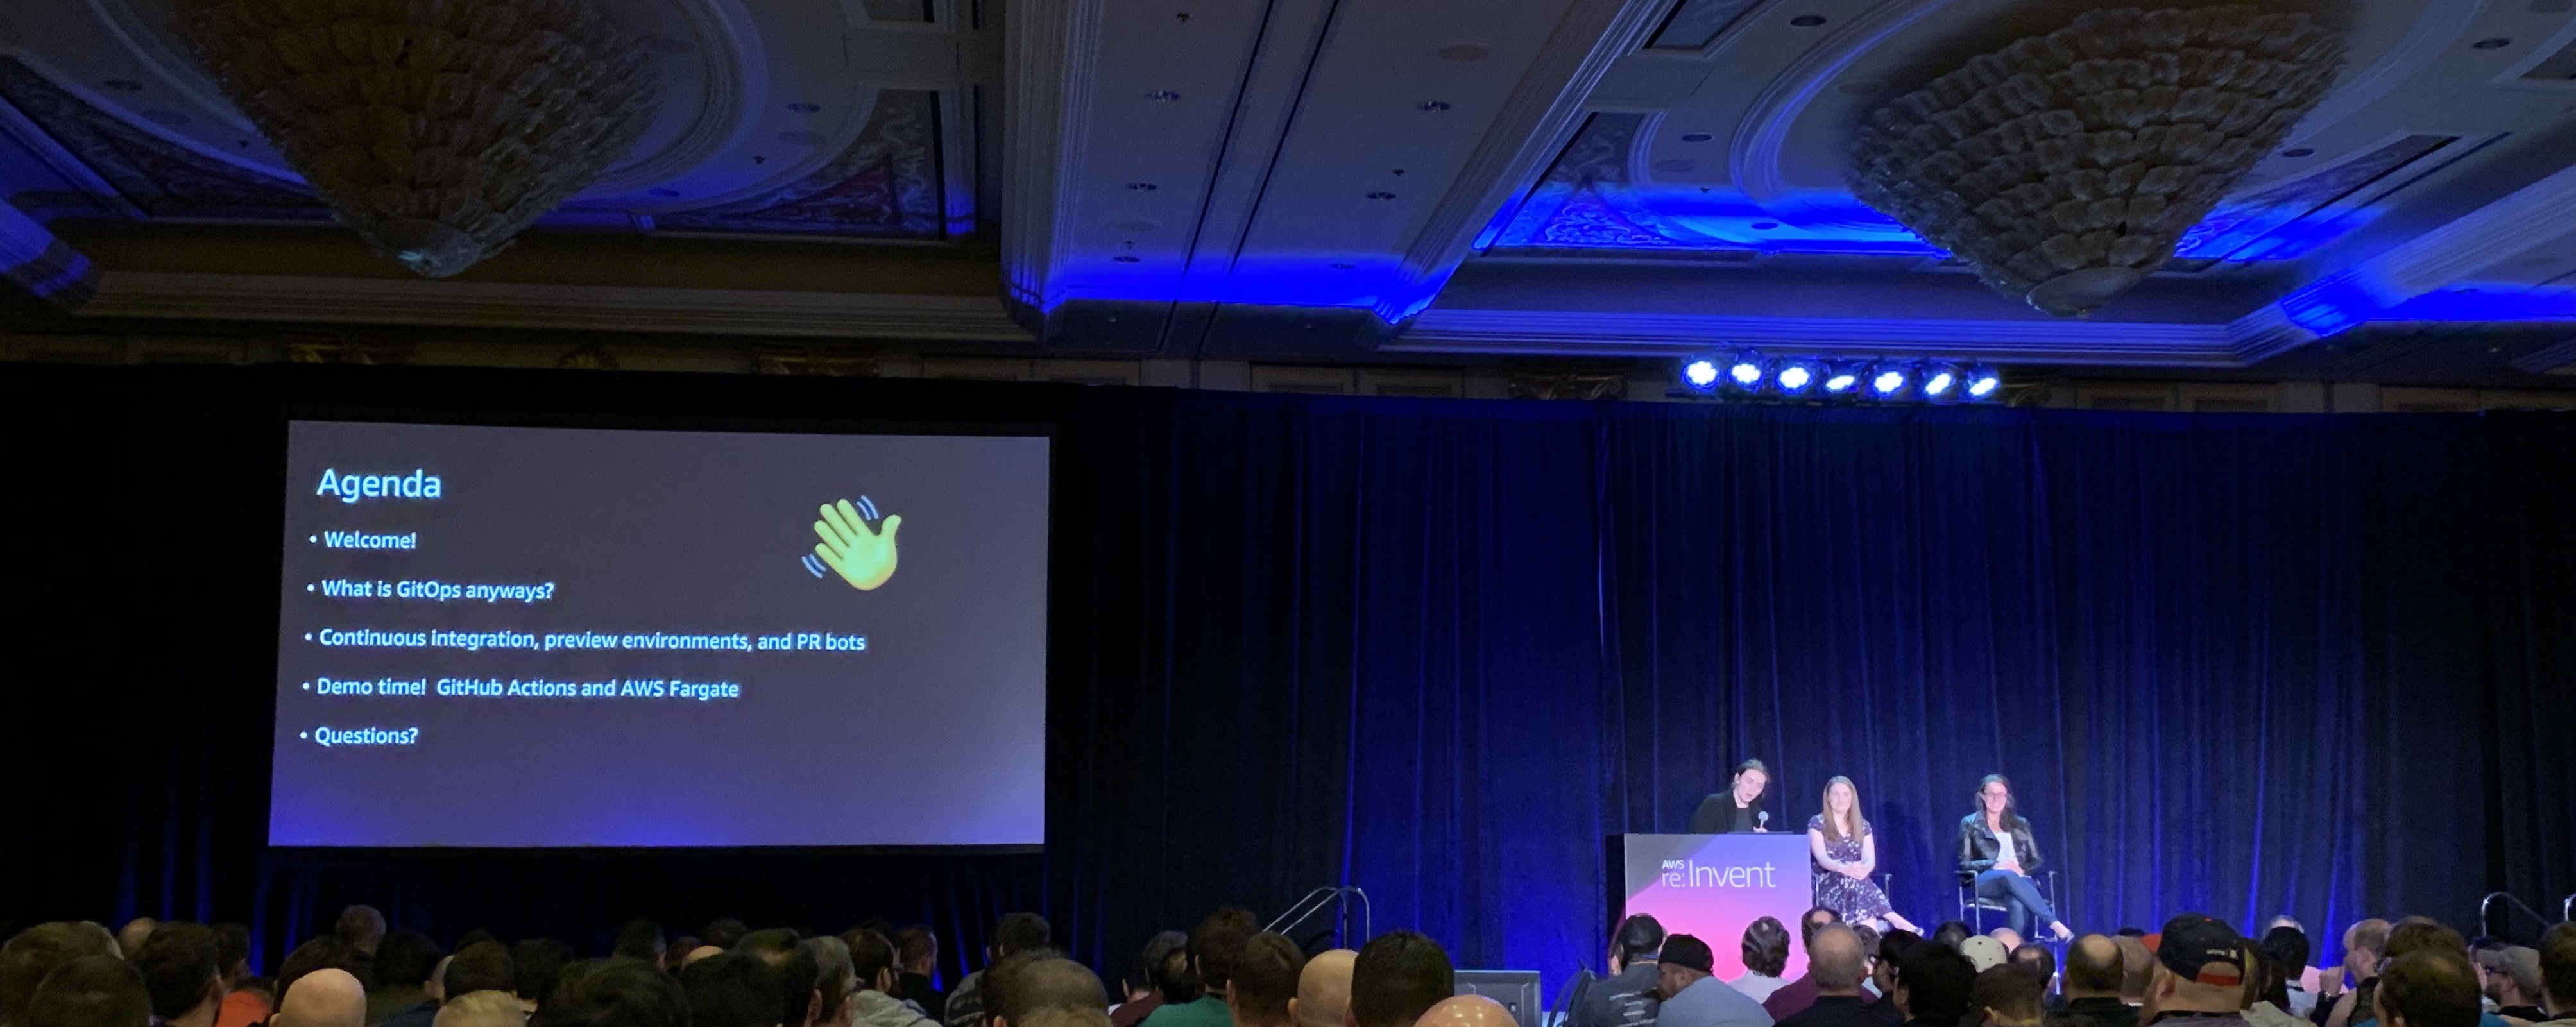 On stage at the Container Power Hour session at the 2018 AWS re:Invent conference. The session agenda is projected on a screen to the left; the session presenters are seated on stage to the right.